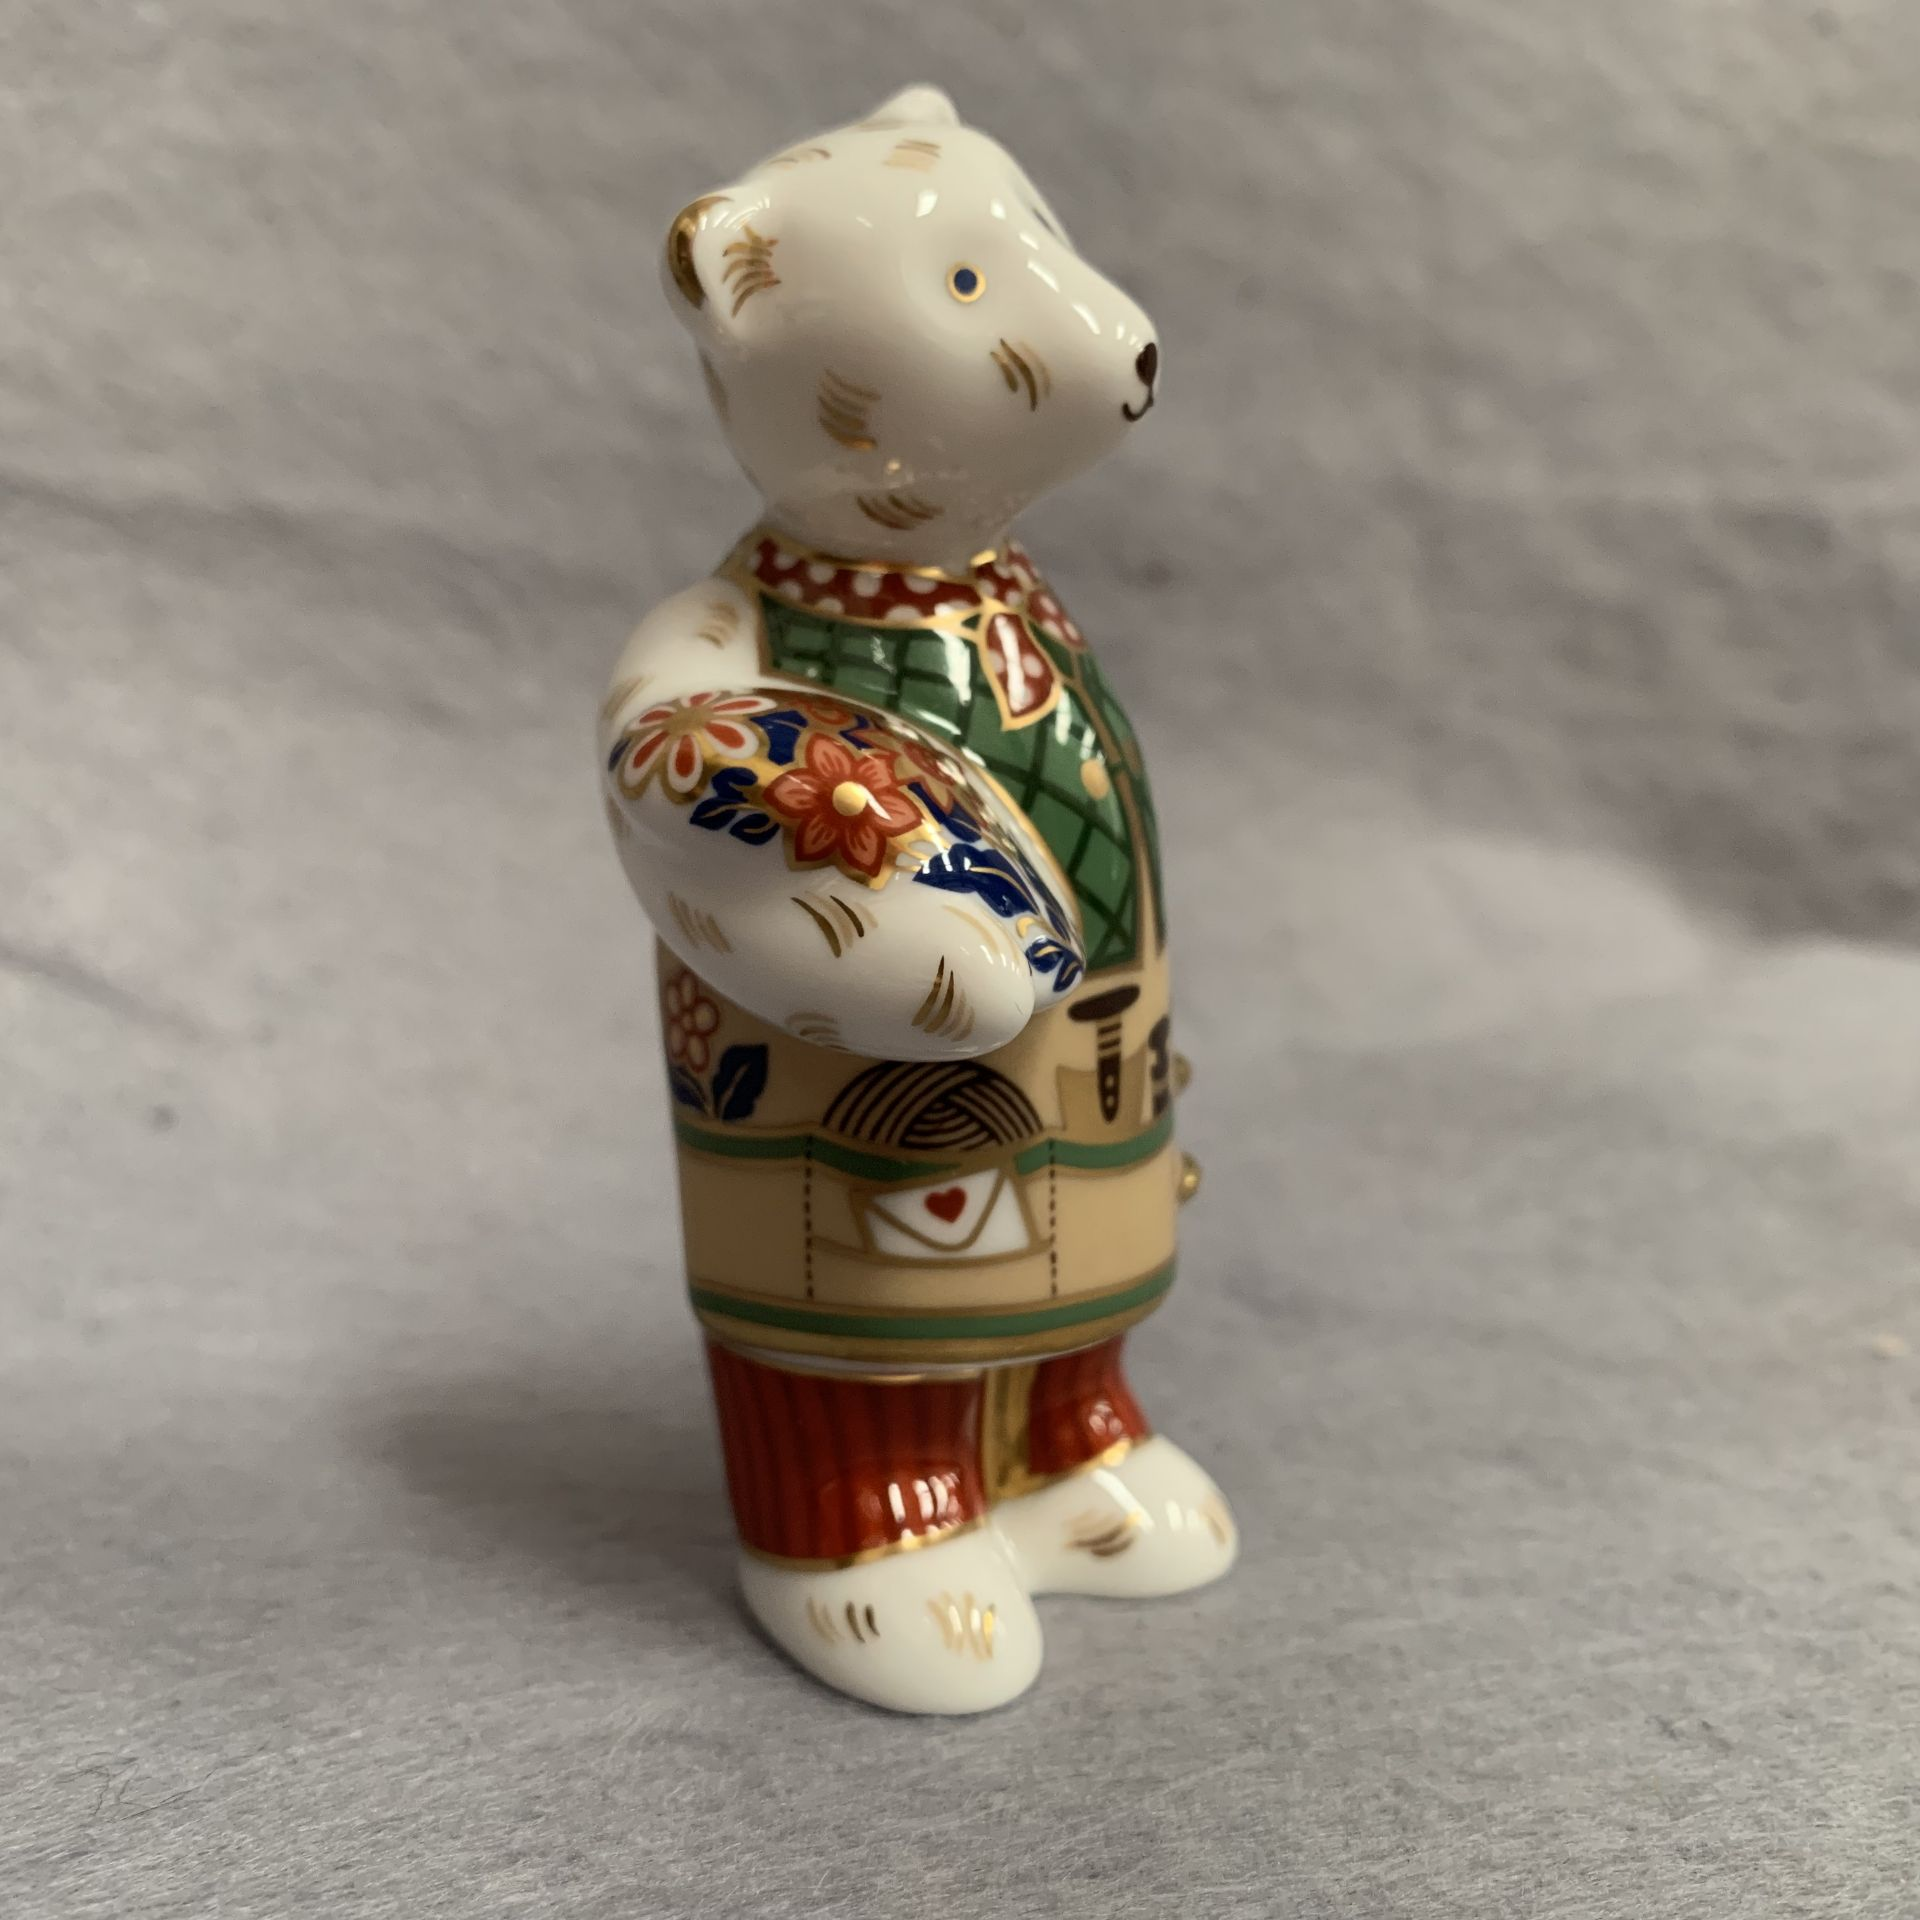 Lot 17 - Royal Crown Derby paperweight modelled as a Teddy carrying flowers,